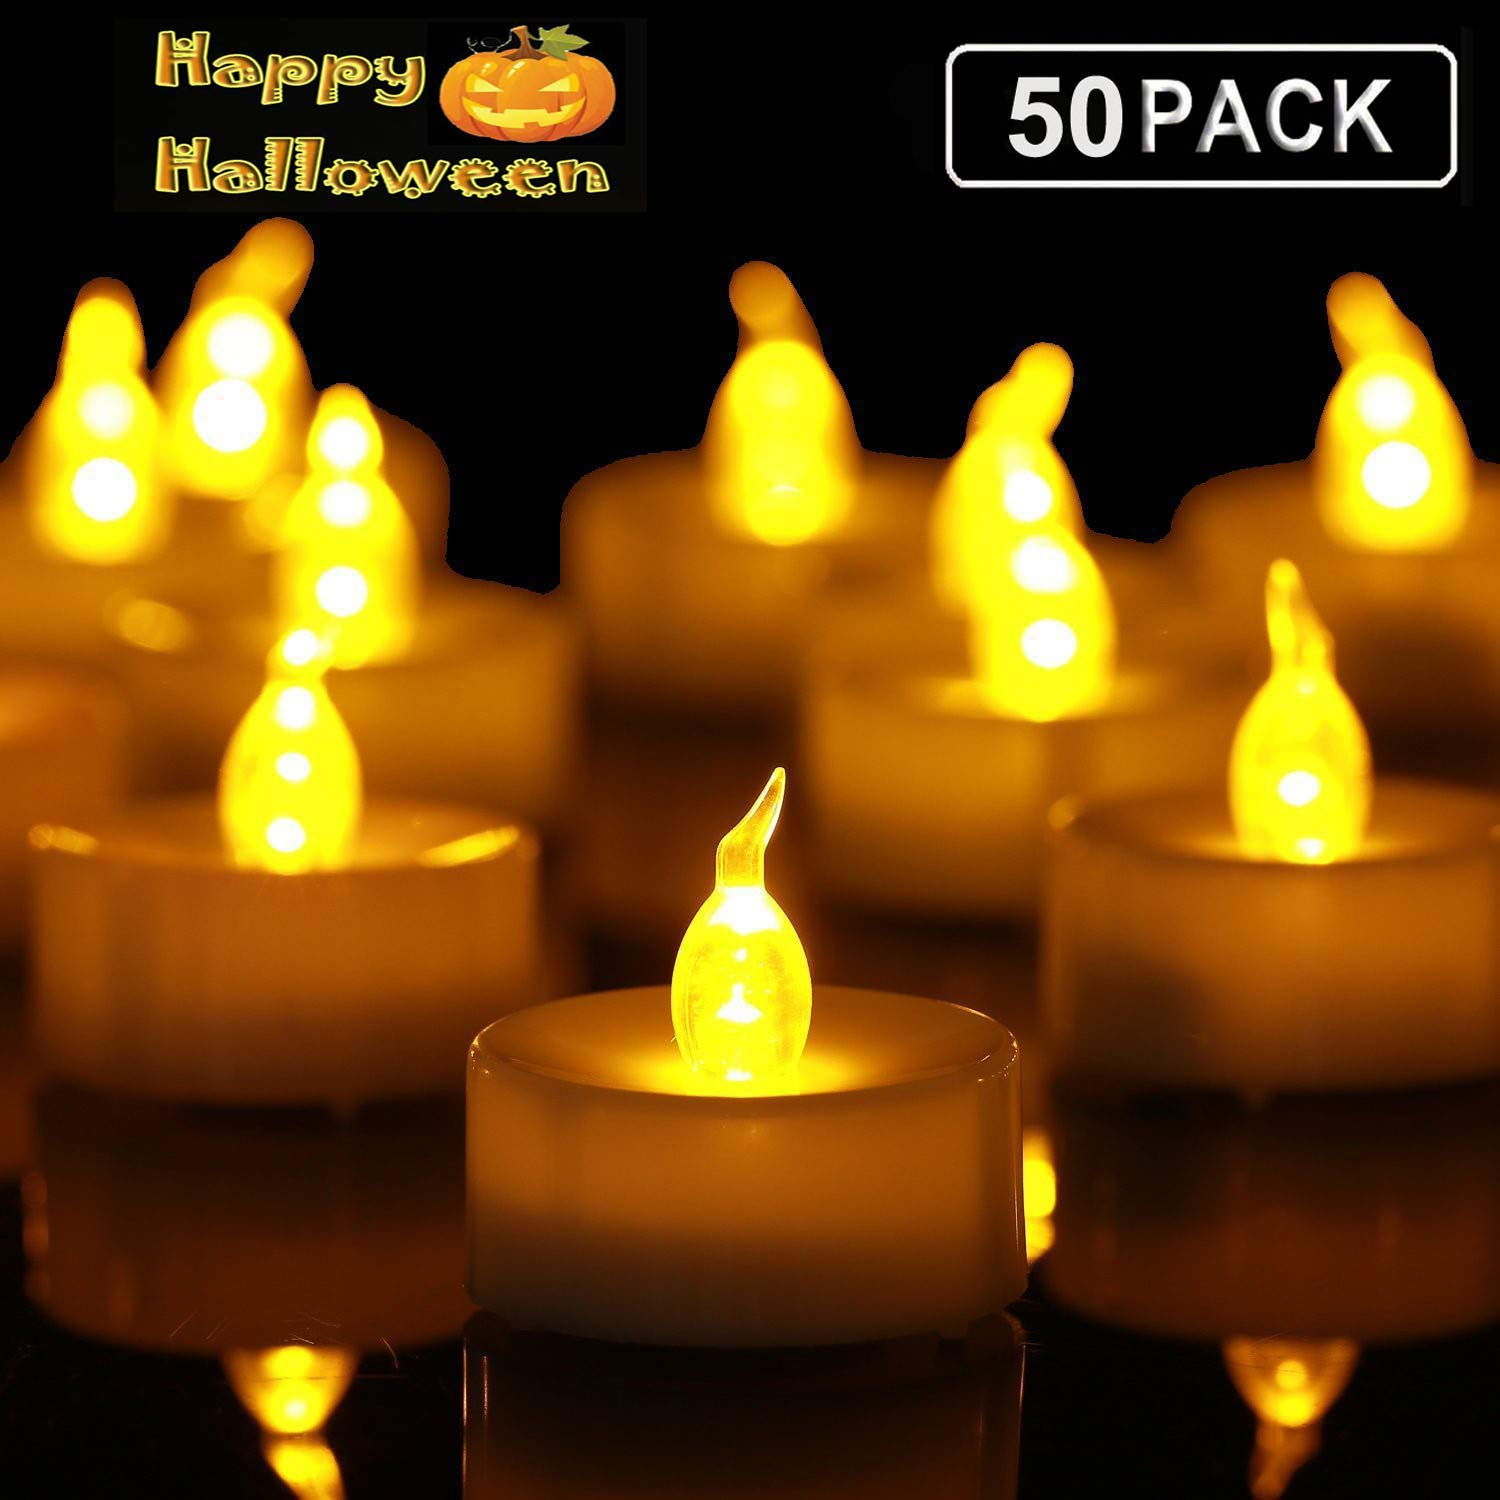 Tea Lights,50 Pack Flameless LED Tealight Candles,Realistic and Bright Flickering Led Bulb, Battery Operated LED Tea Lights Candles. Ideal for Parties, Weddings, Birthdays, Gifts and Home. by Anziner